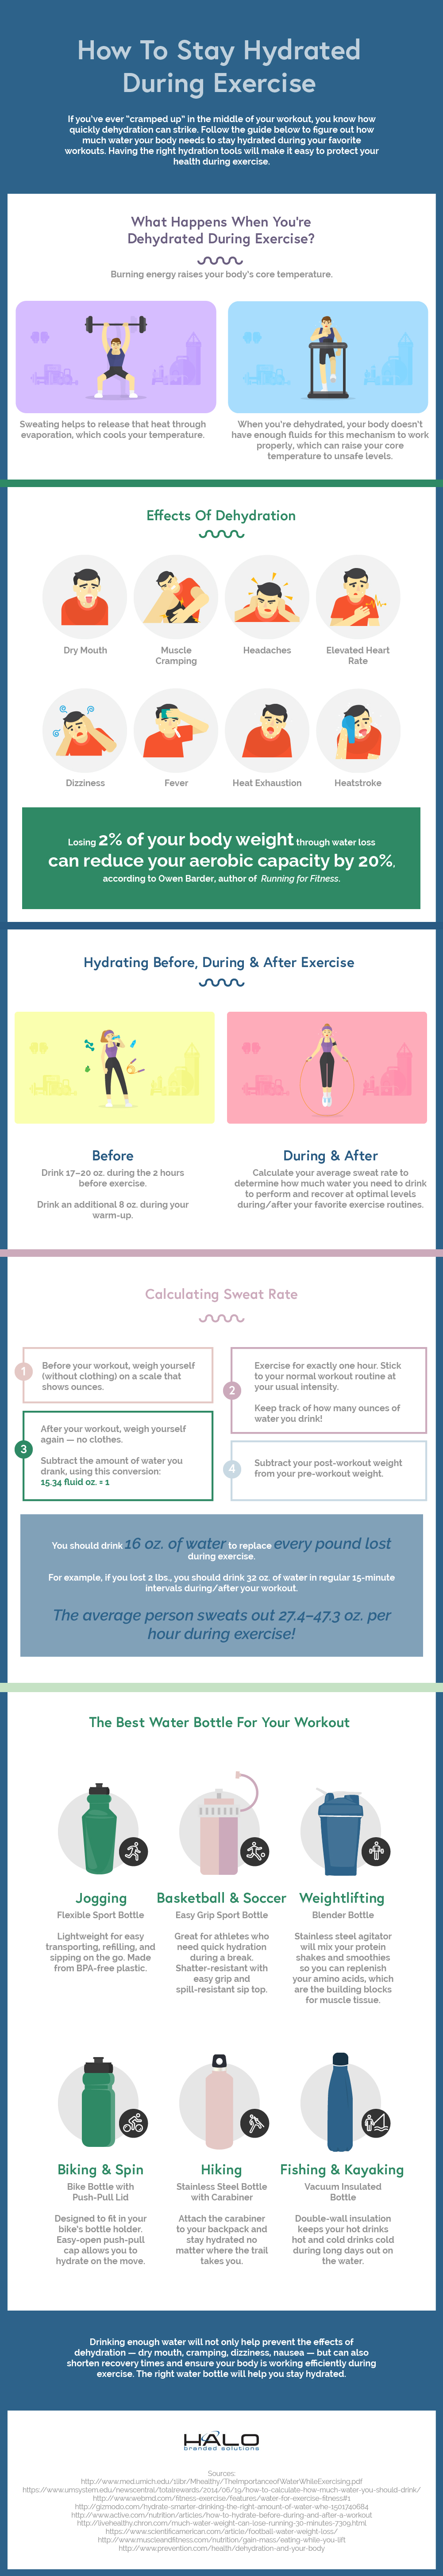 The Importance of Water Consumption During Exercise - Infographic